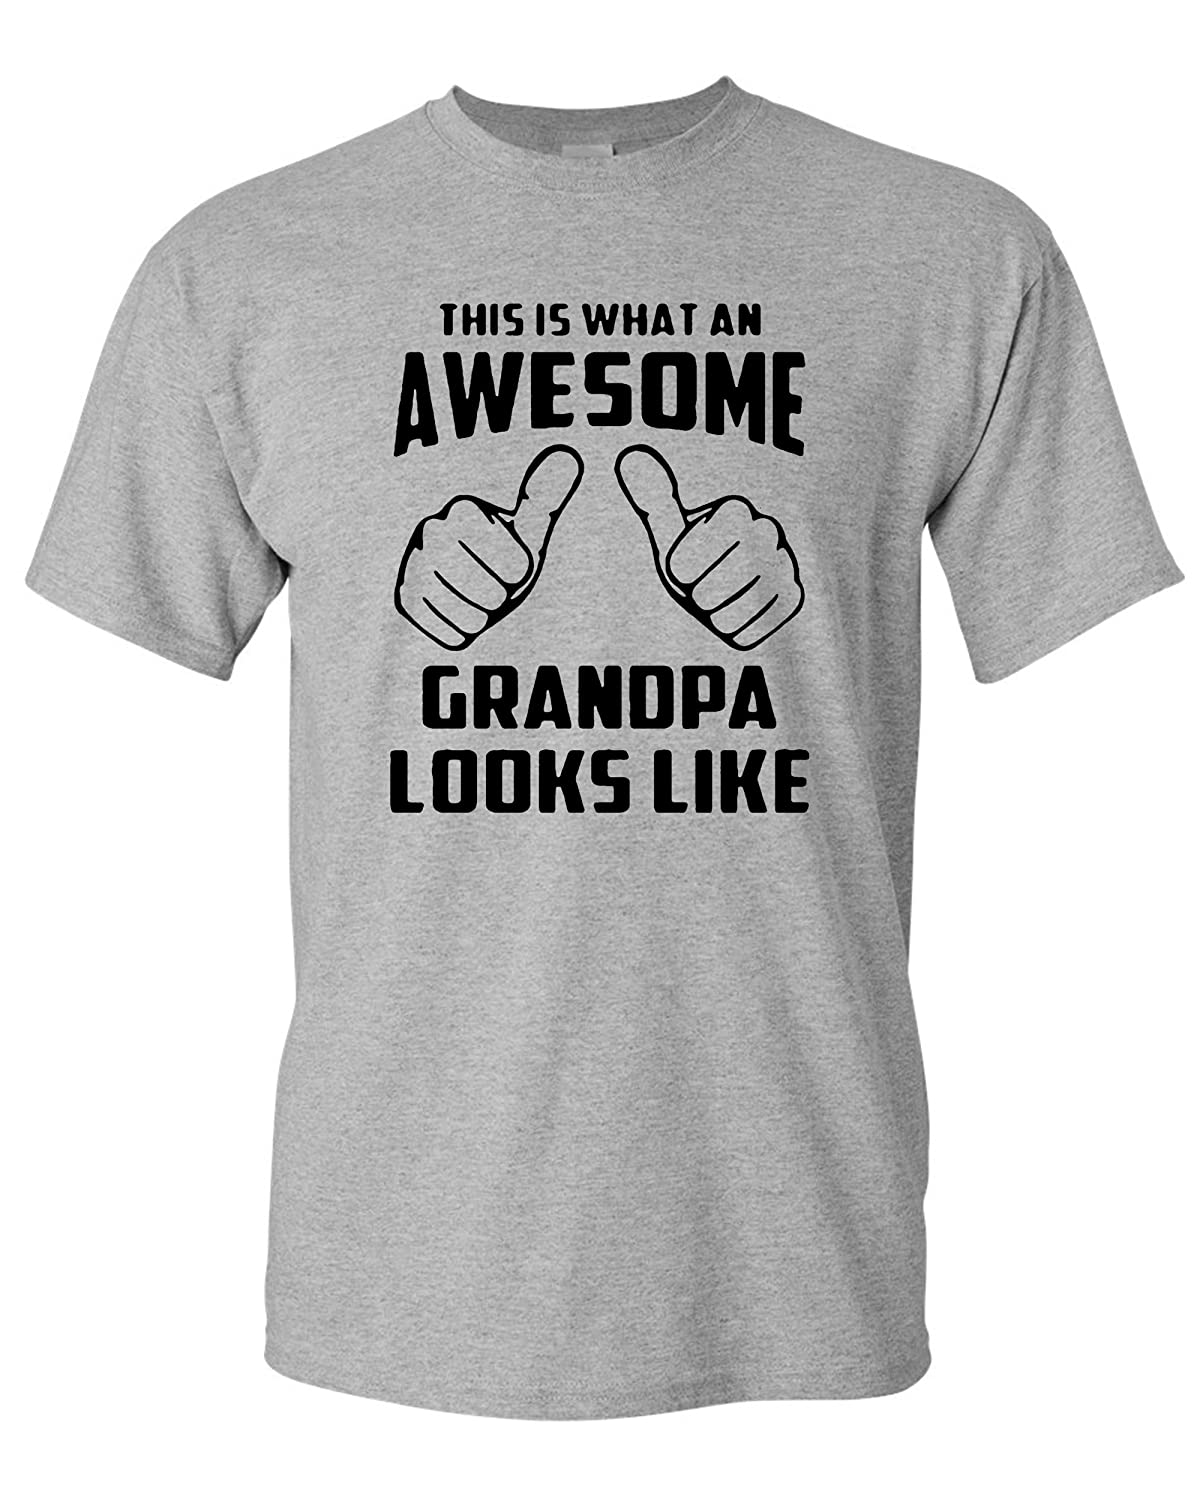 This Is What An Awesome Grandpa Looks Like Adult Tshirt